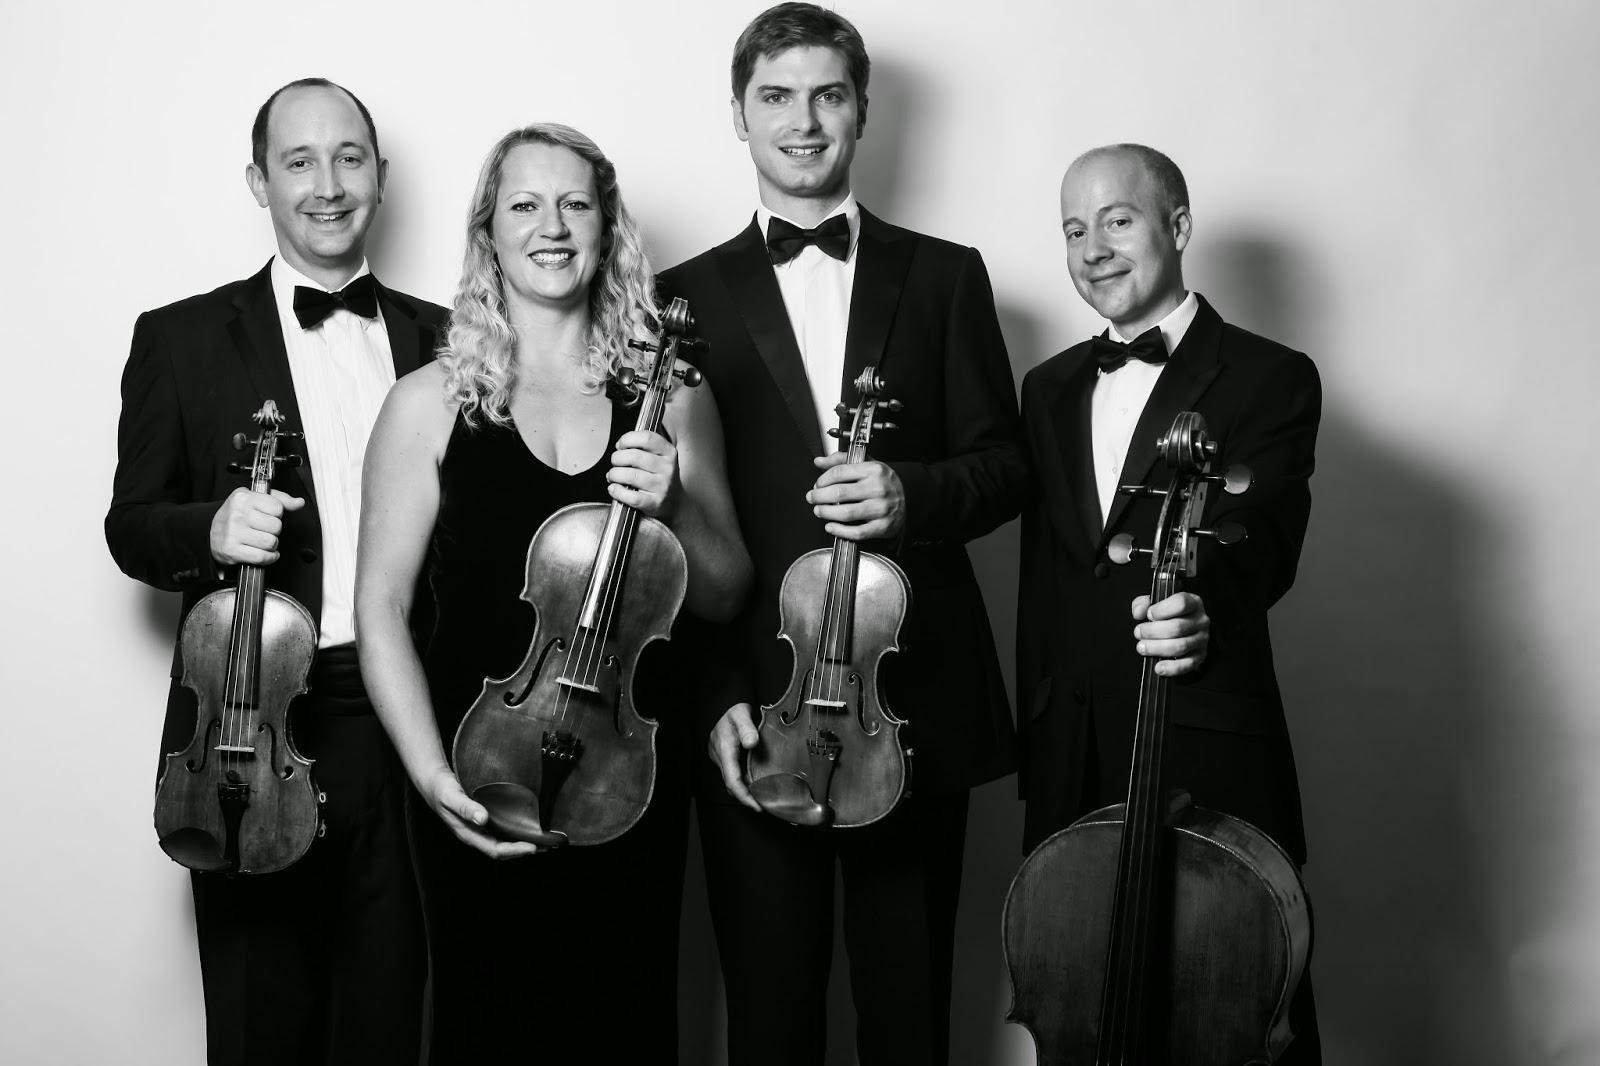 The Tippett Quartet - photo credit Thurstan Redding